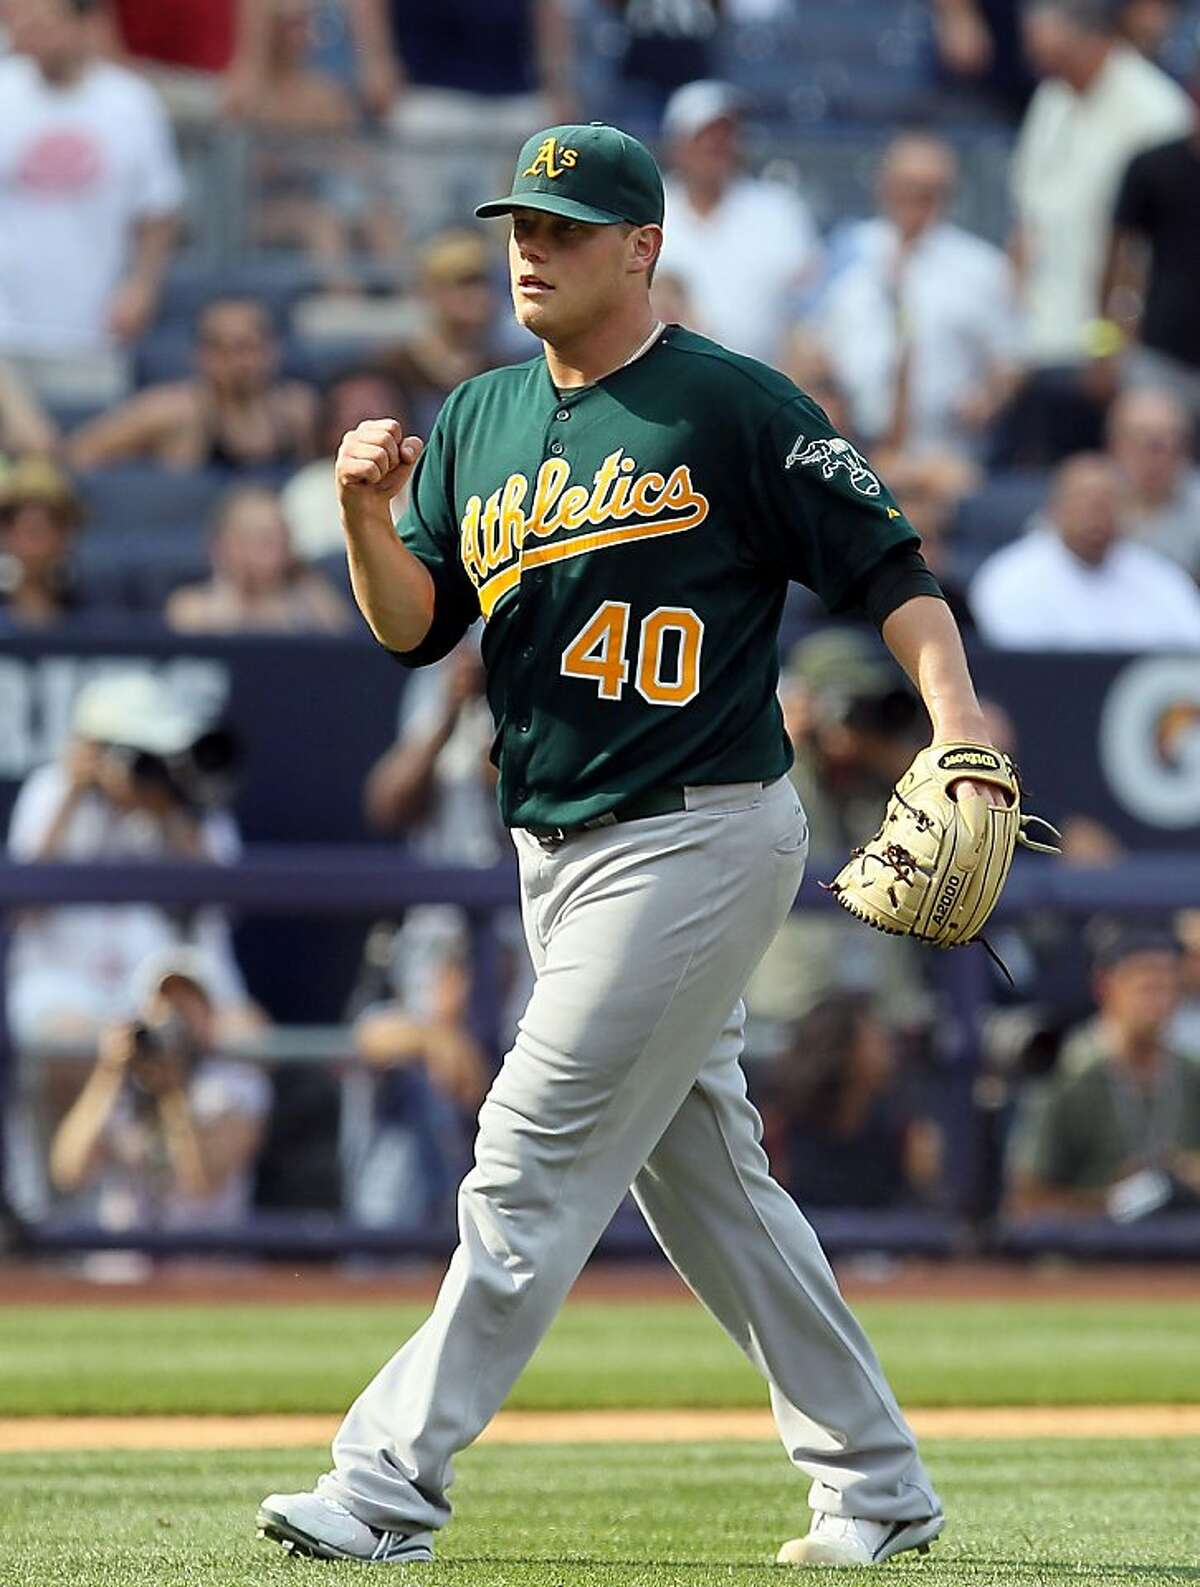 Andrew Bailey #40 of the Oakland Athletics celebrates after defeating the New York Yankees on July 23, 2011 at Yankee Stadium in the Bronx borough of New York City.